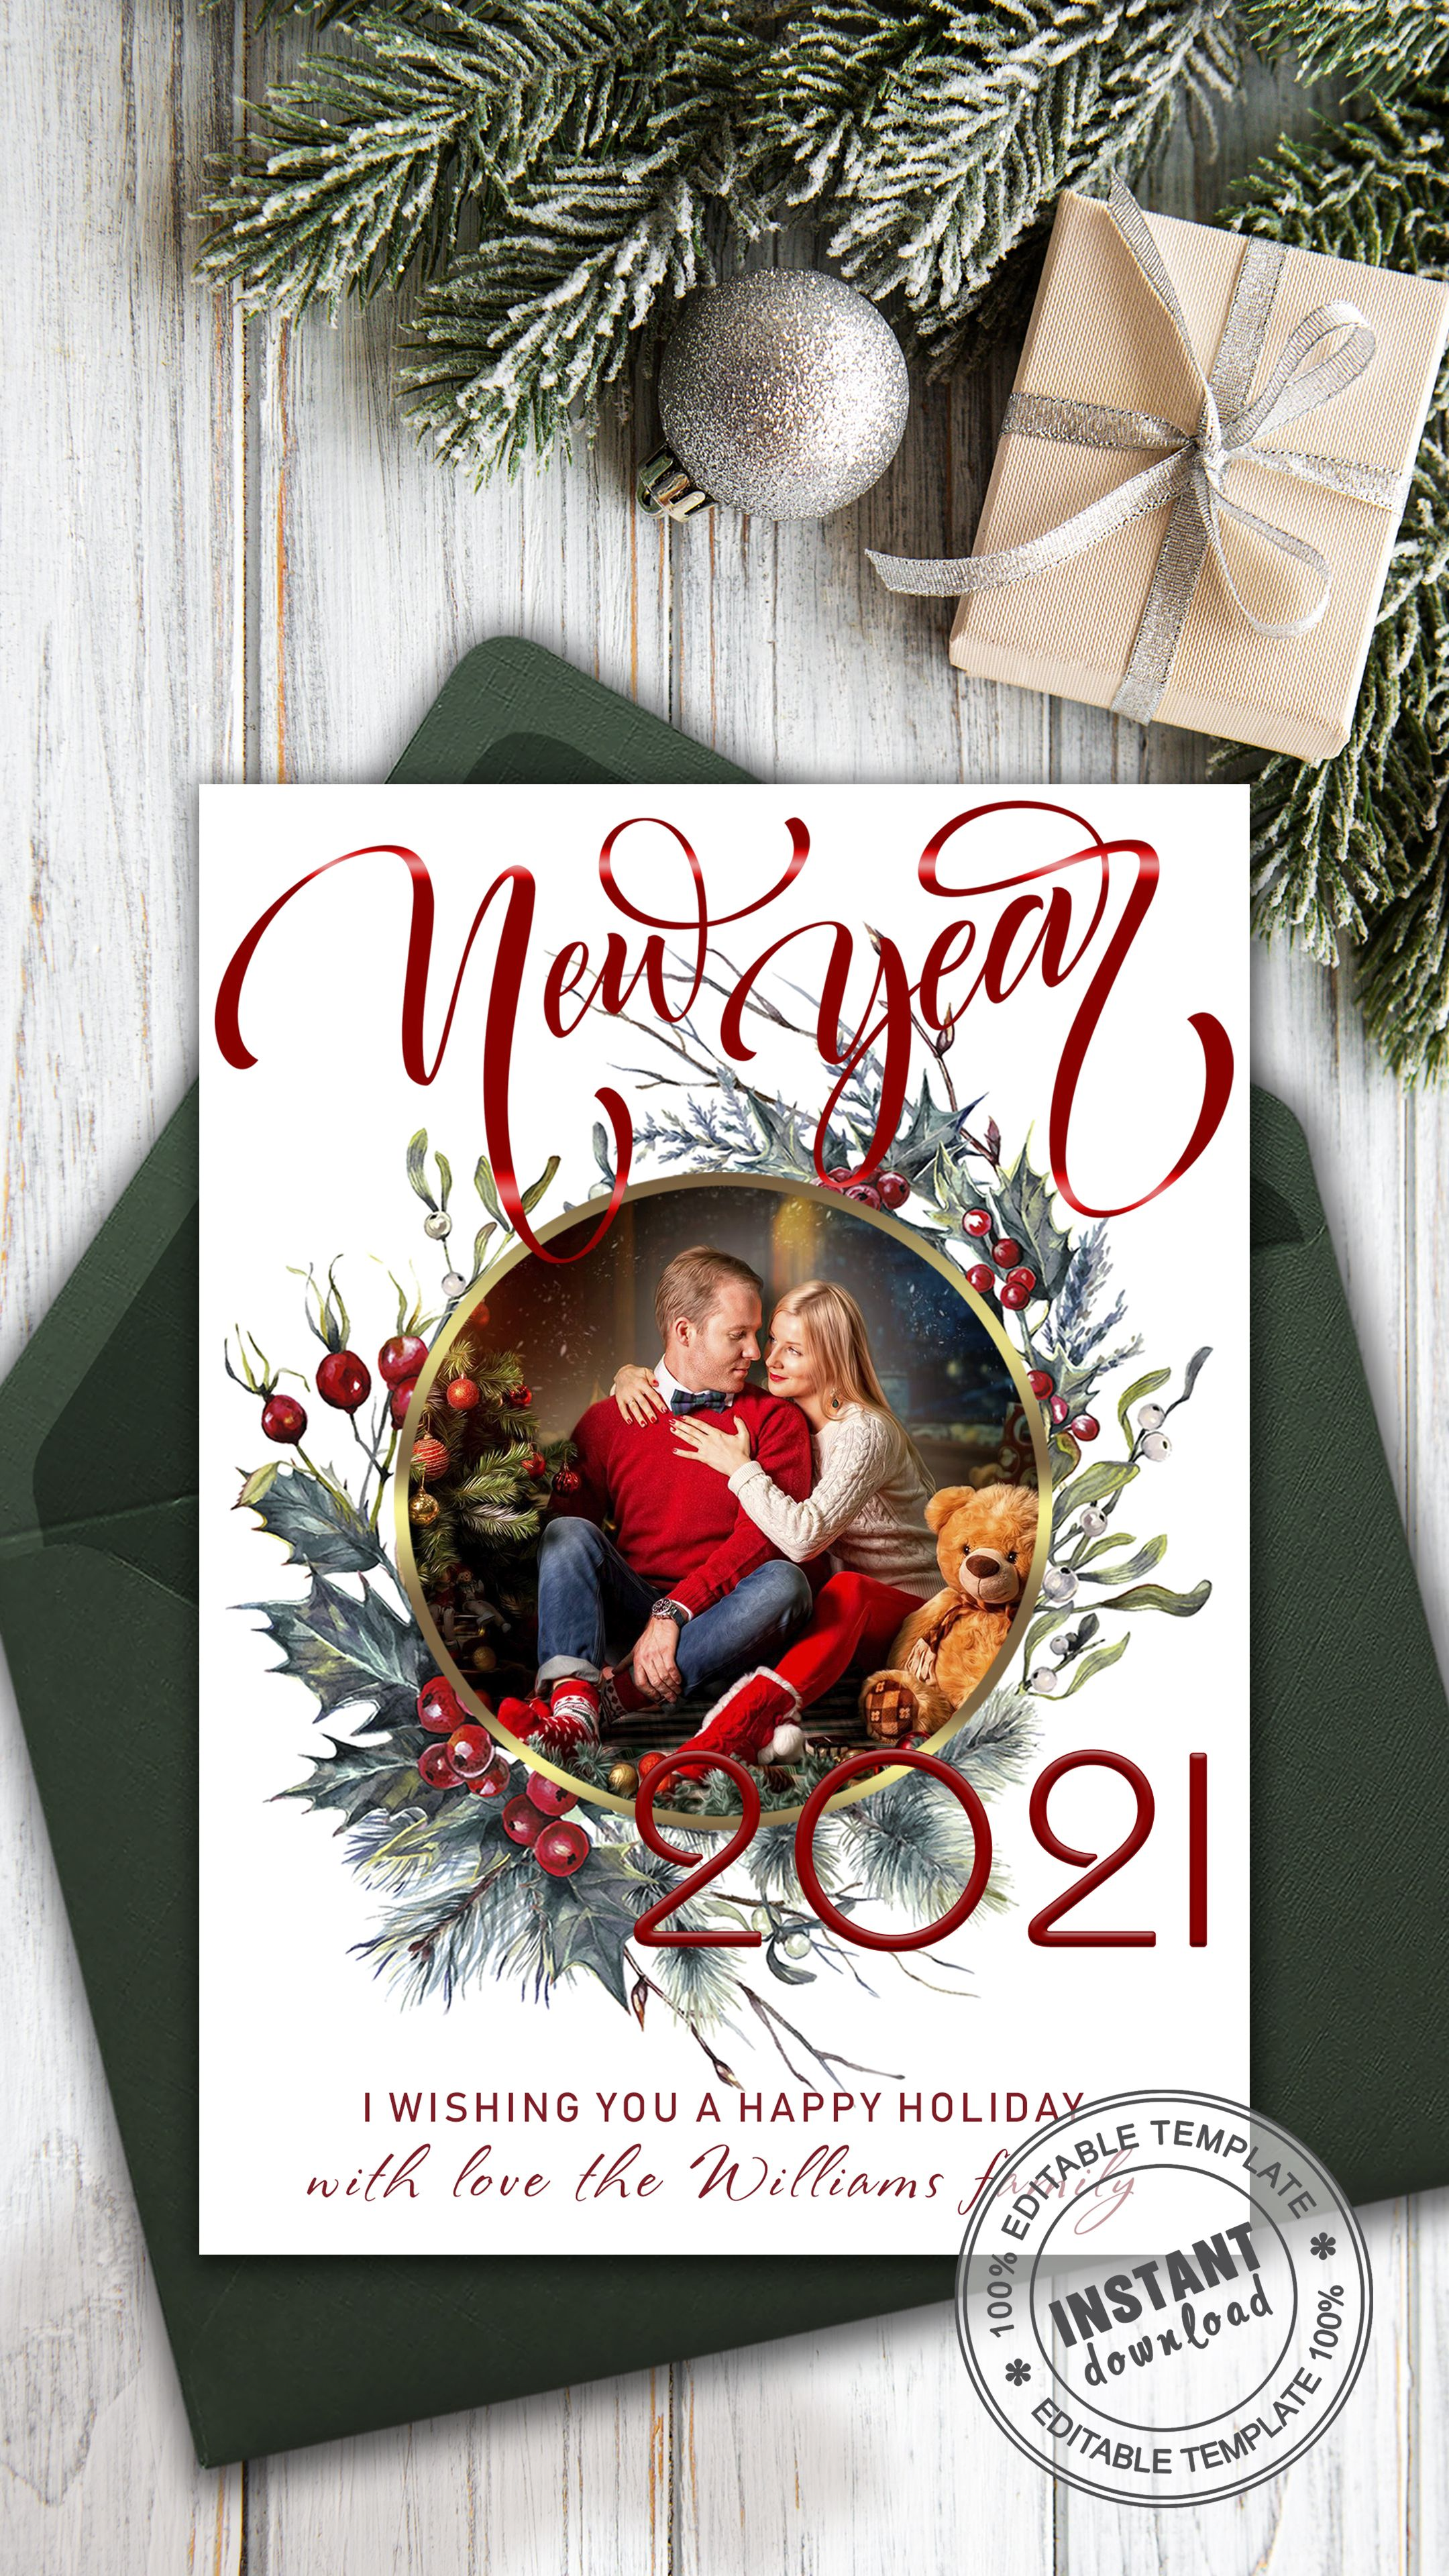 Custom New Year Card Template Holiday Family Card With Photo Etsy In 2021 Custom Holiday Card Family Holiday Cards Personalised Christmas Cards